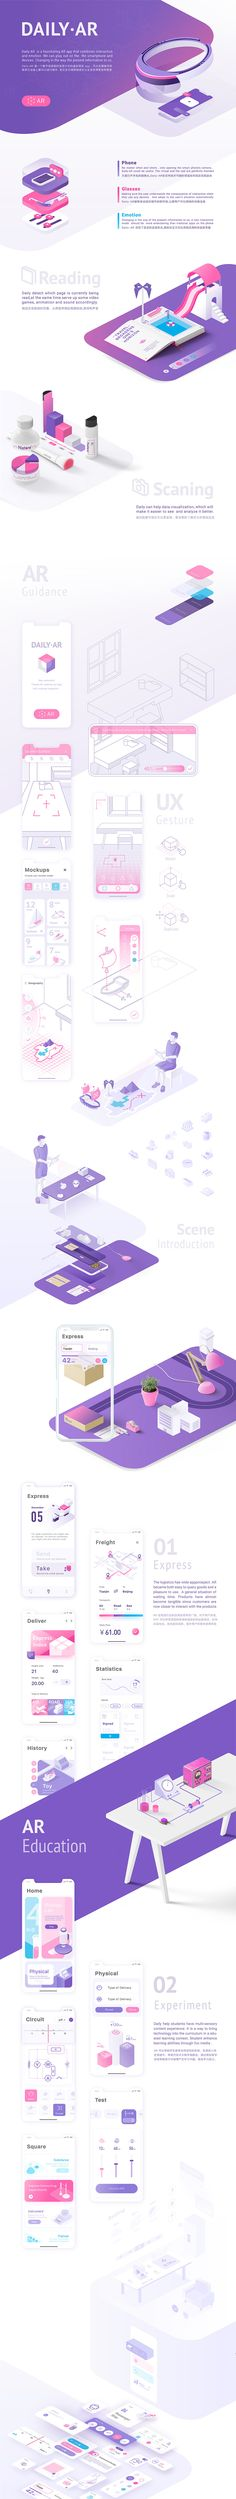 This is our daily Web app design inspiration article for our loyal readers. Every day we are showcasing a web app design whether live on app stores or only designed as concept. Cool Web Design, Best App Design, Web Design Trends, Page Design, Font Design, Layout Design, Iphone App Design, Android App Design, Website Design Inspiration